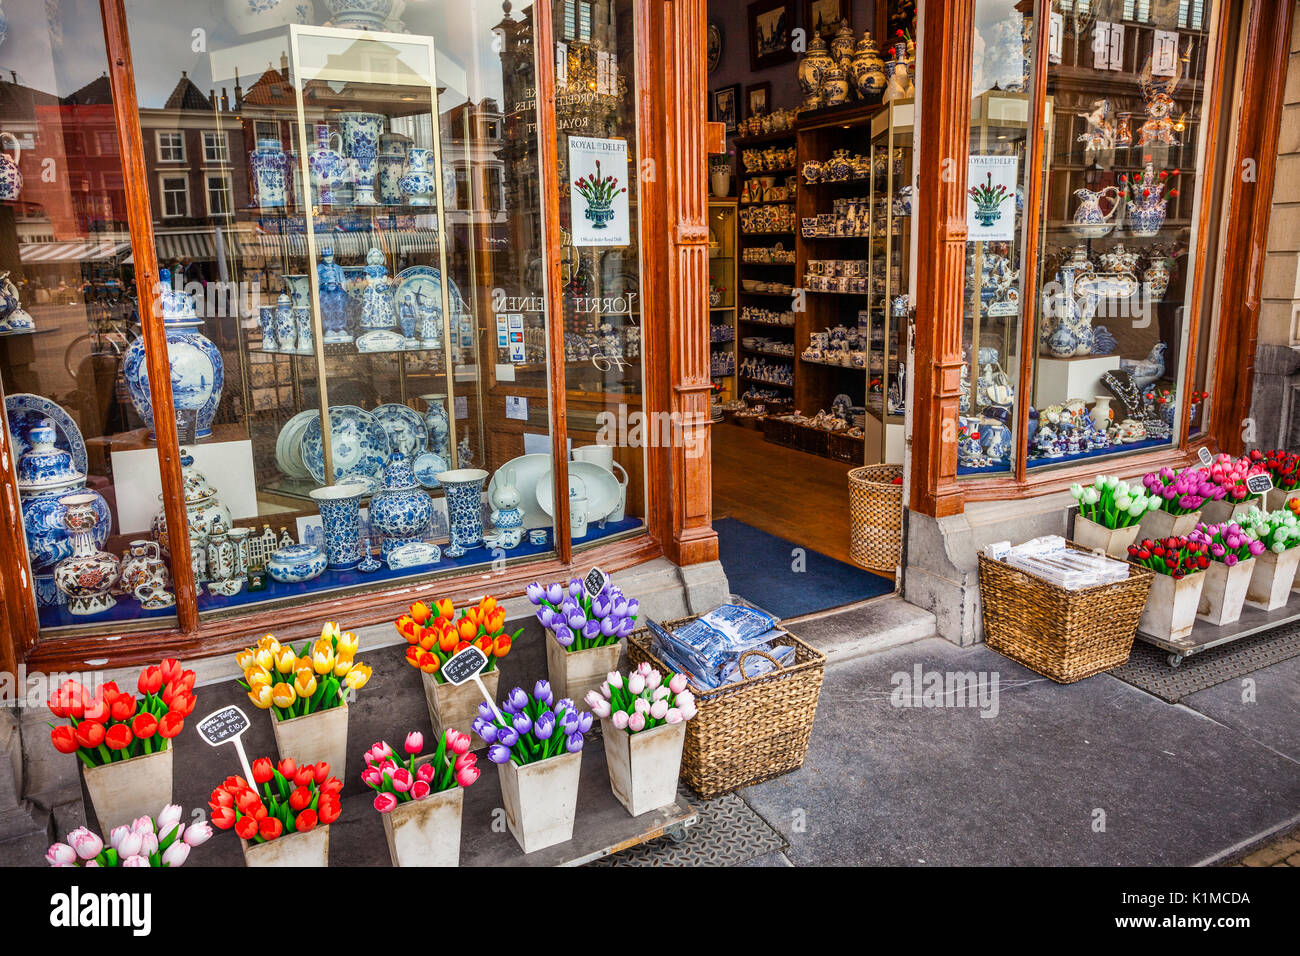 Netherlands, South Holland, Delft, blue Delftware pottery and tulips at a souvenir shop - Stock Image